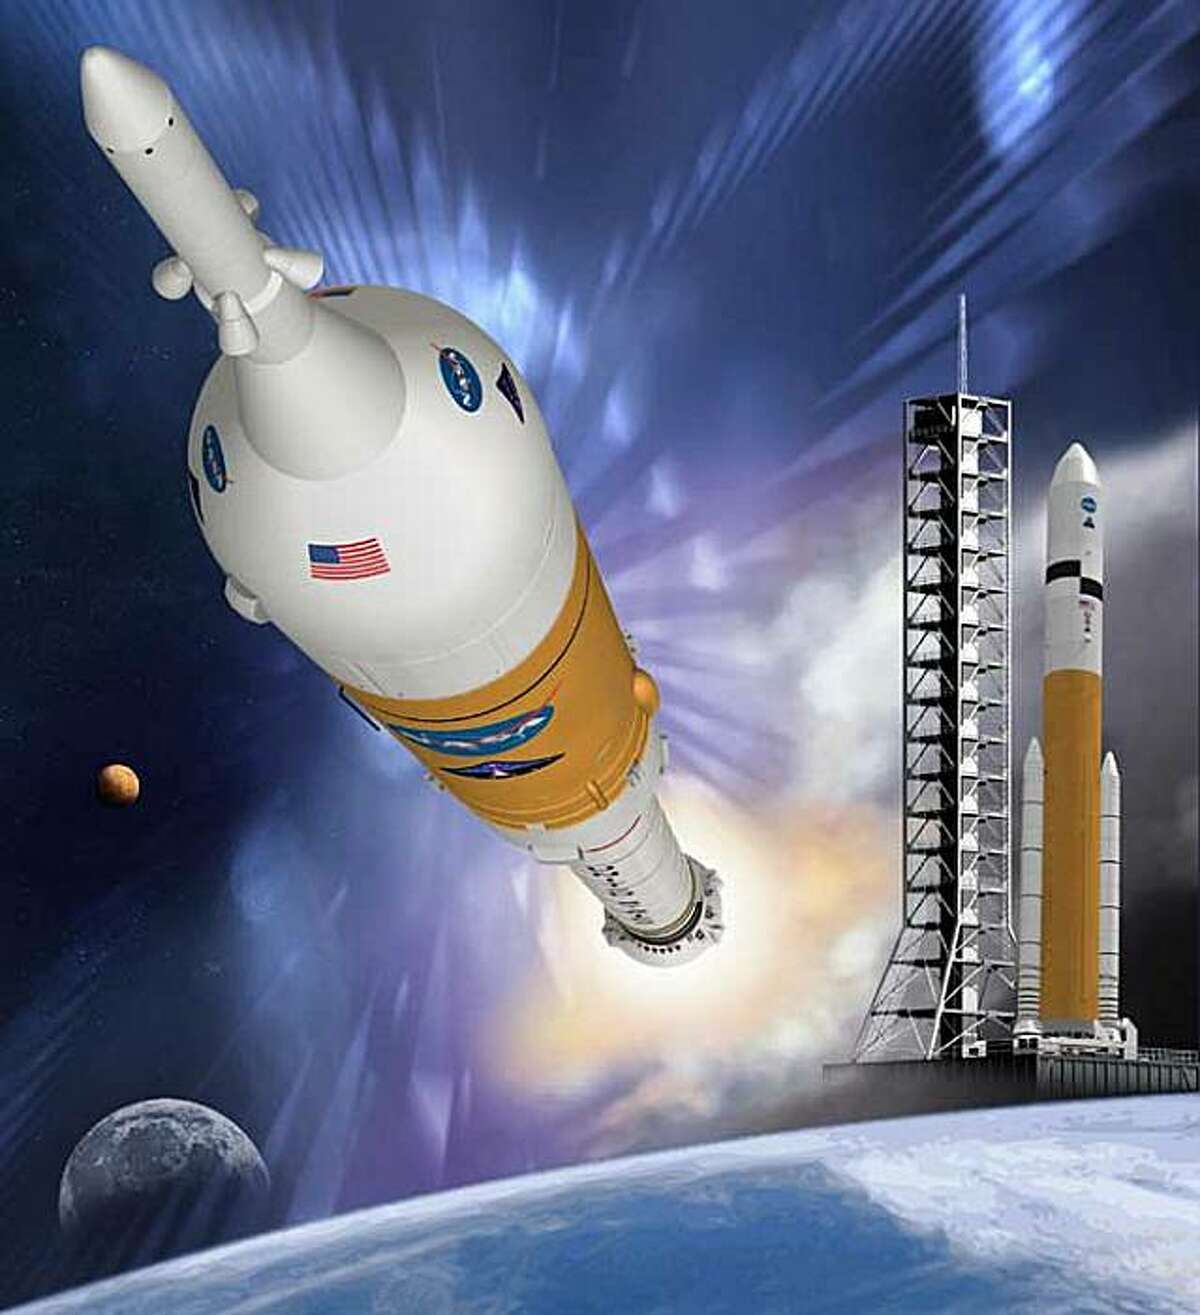 This undated artist's rendering released by NASA shows the Ares I crew launch vehicle during launch and the Ares V cargo launch vehicle on the launch pad. Officially, the space agency is still on track with a 4-year-old plan to spend $35 billion to build new rockets and return astronauts to the moon in several years. However, a top NASA manager is floating a cut-rate alternative that costs around $6.6 billion. (AP Photo/NASA)